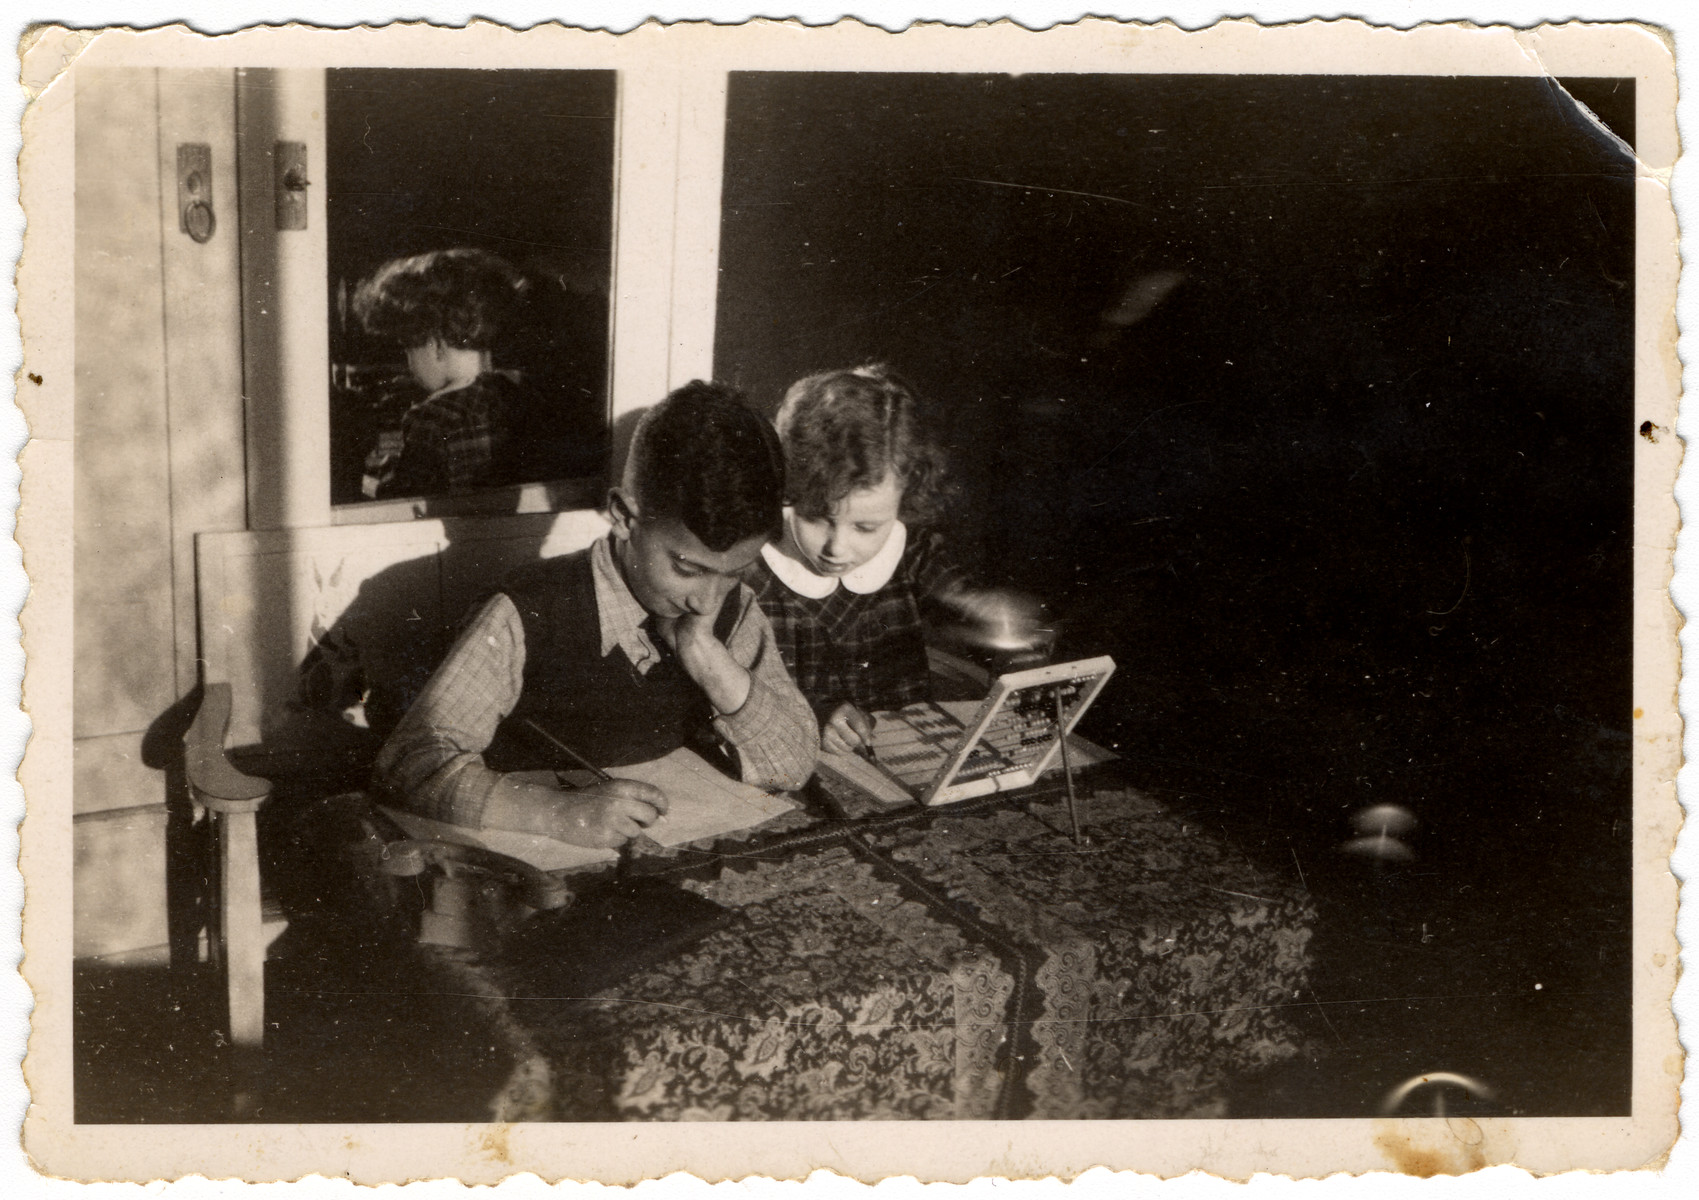 Martin Wertheim and his friend Ana do calculations on an abacus.  The young girl may be be Nana Willinsky.